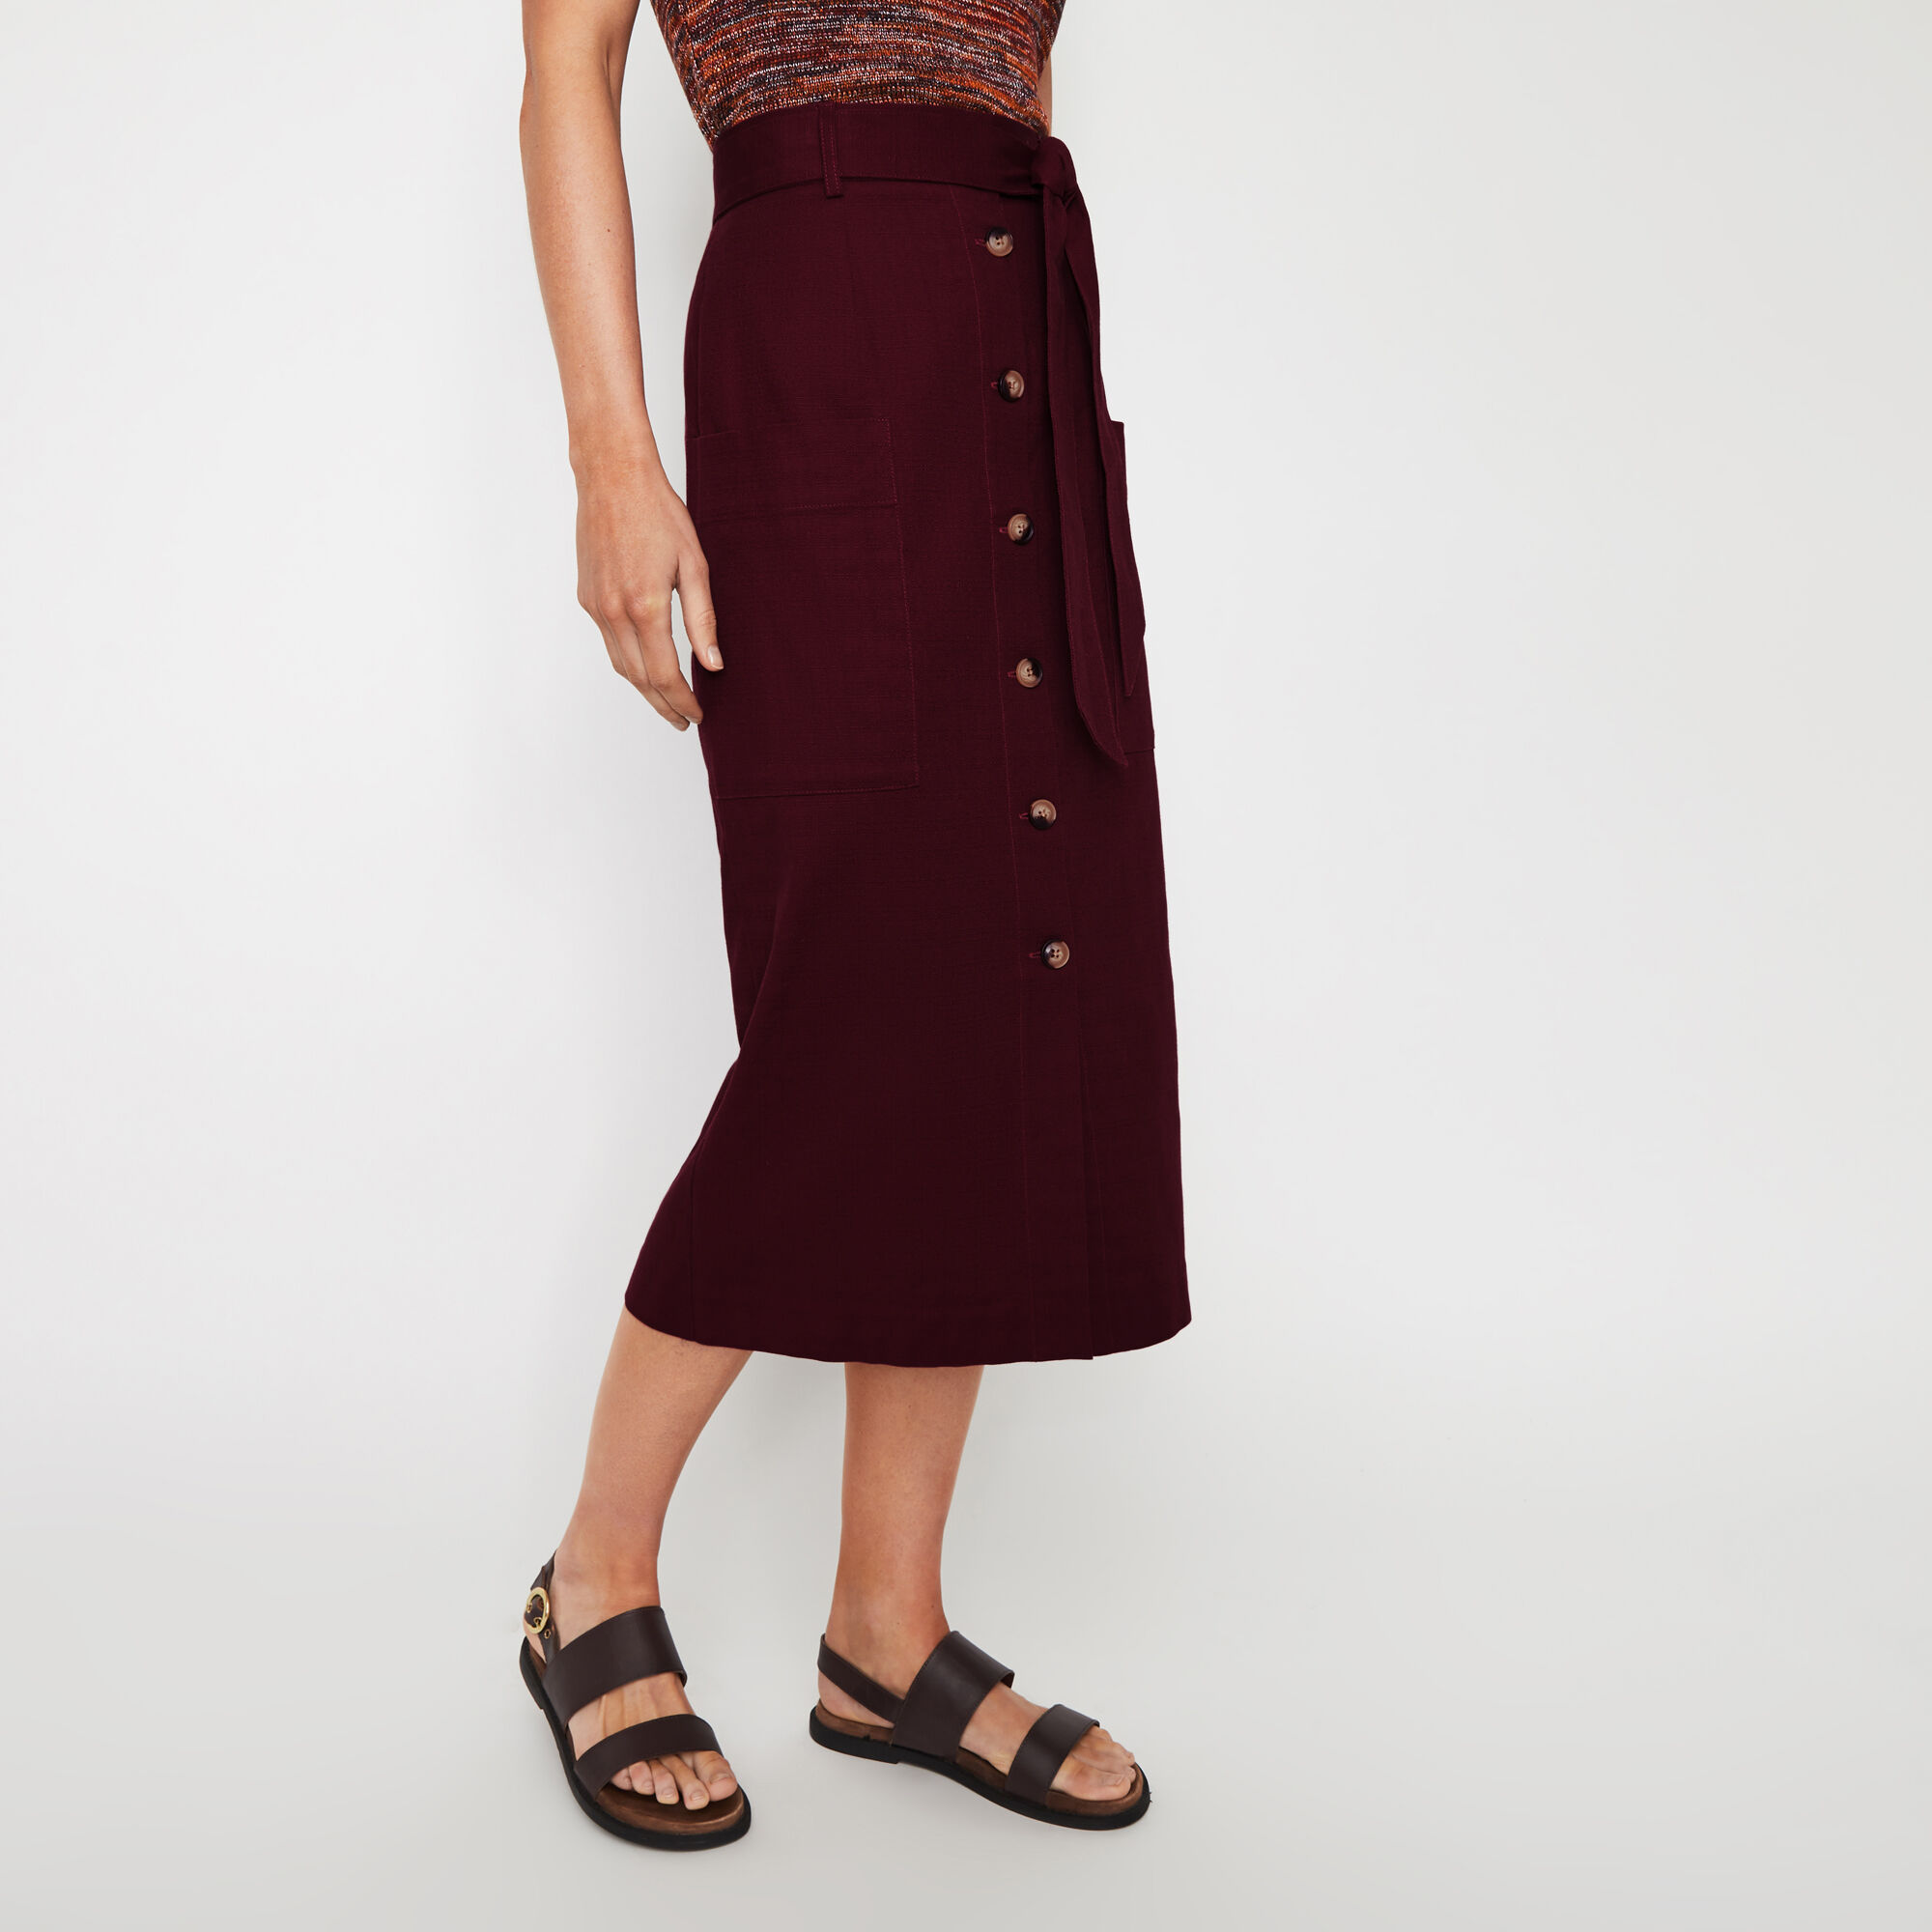 Warehouse, BUTTON THROUGH PENCIL SKIRT Dark Red 1